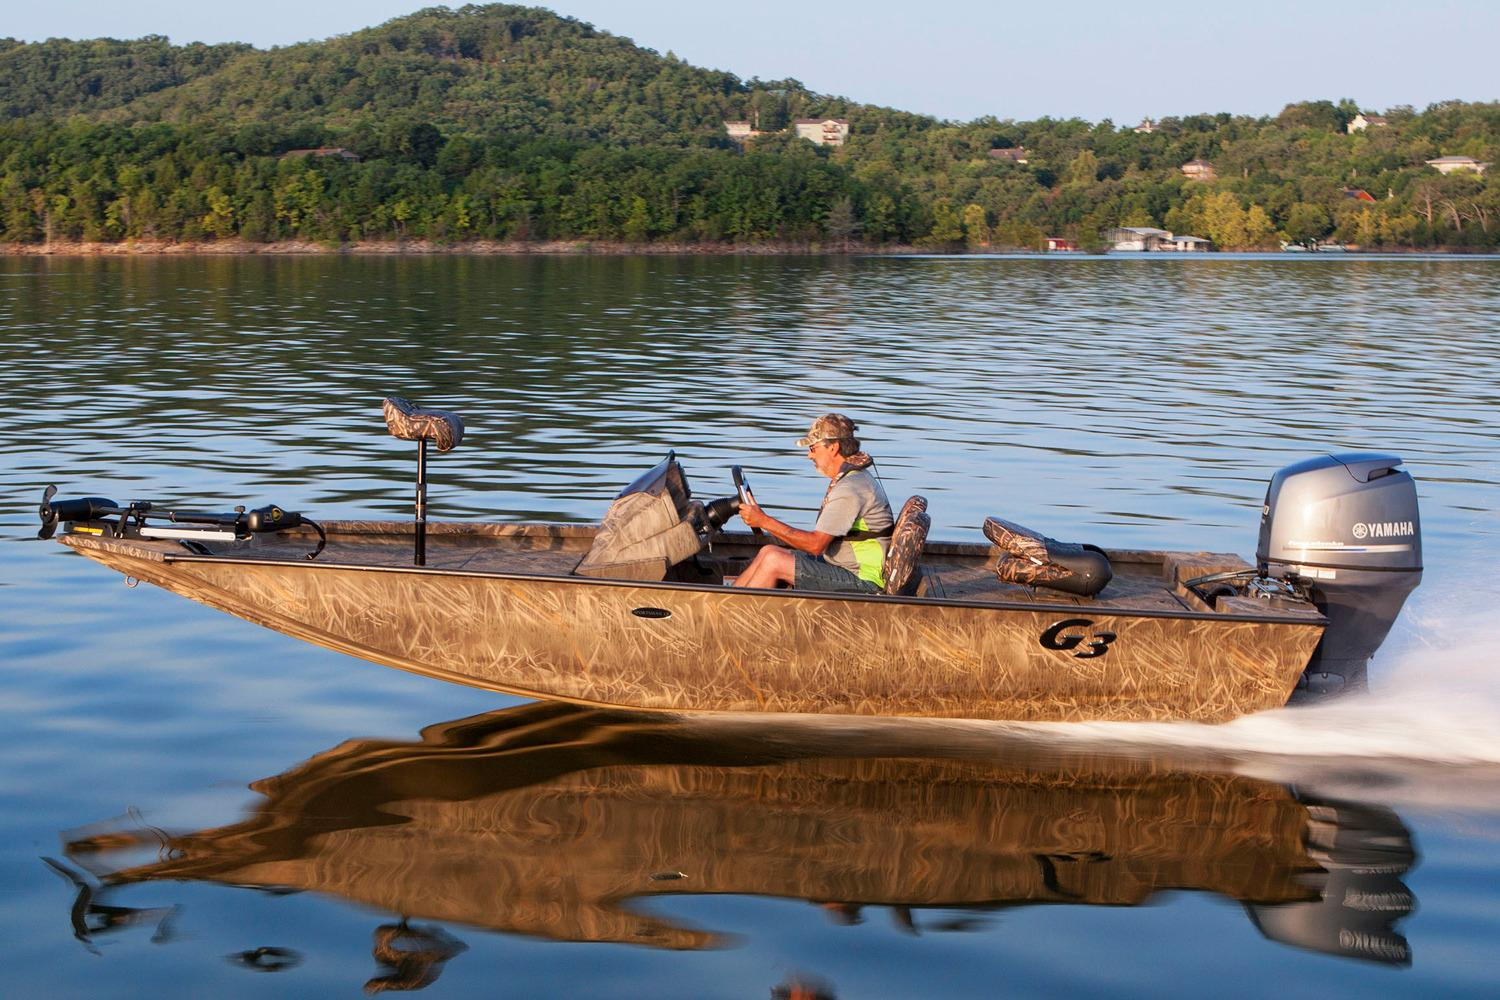 G3 sportsman 17 camo boats for sale for G3 fishing boats